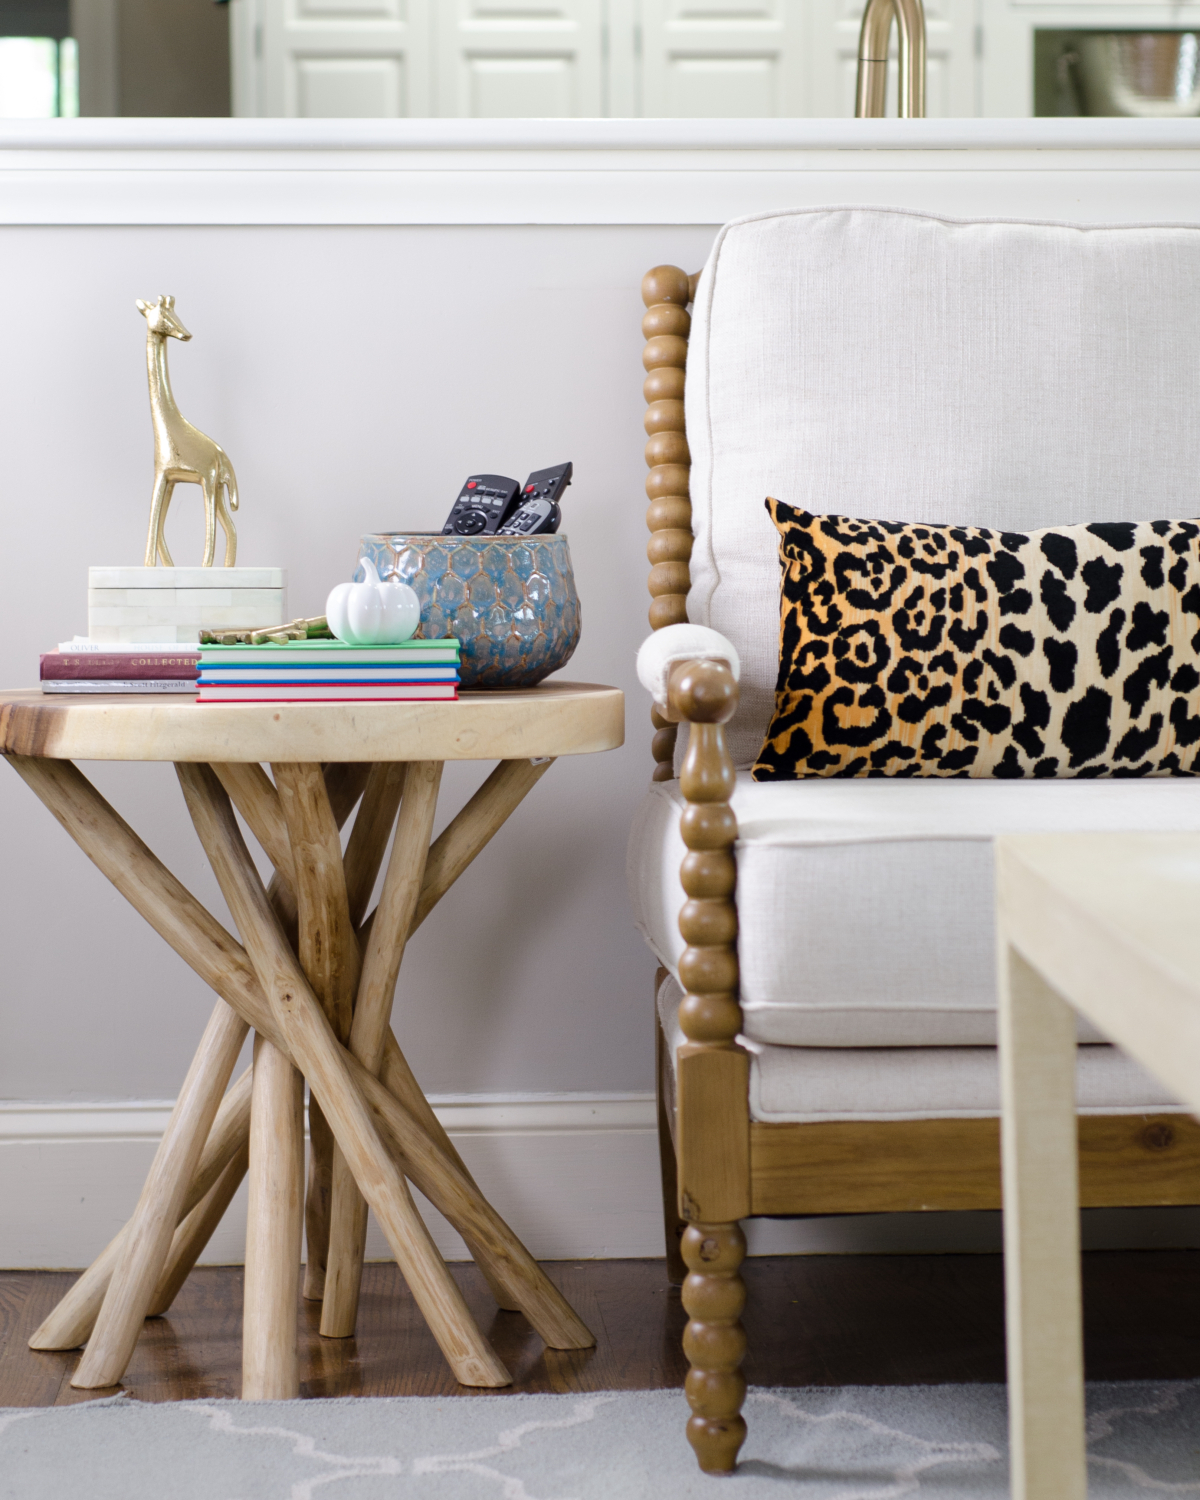 Fall leopard print pillows, spool chair, branch side table, plus ten simple, easy fall decorating ideas you can bring into your home this season for perfect, subtle fall charm.